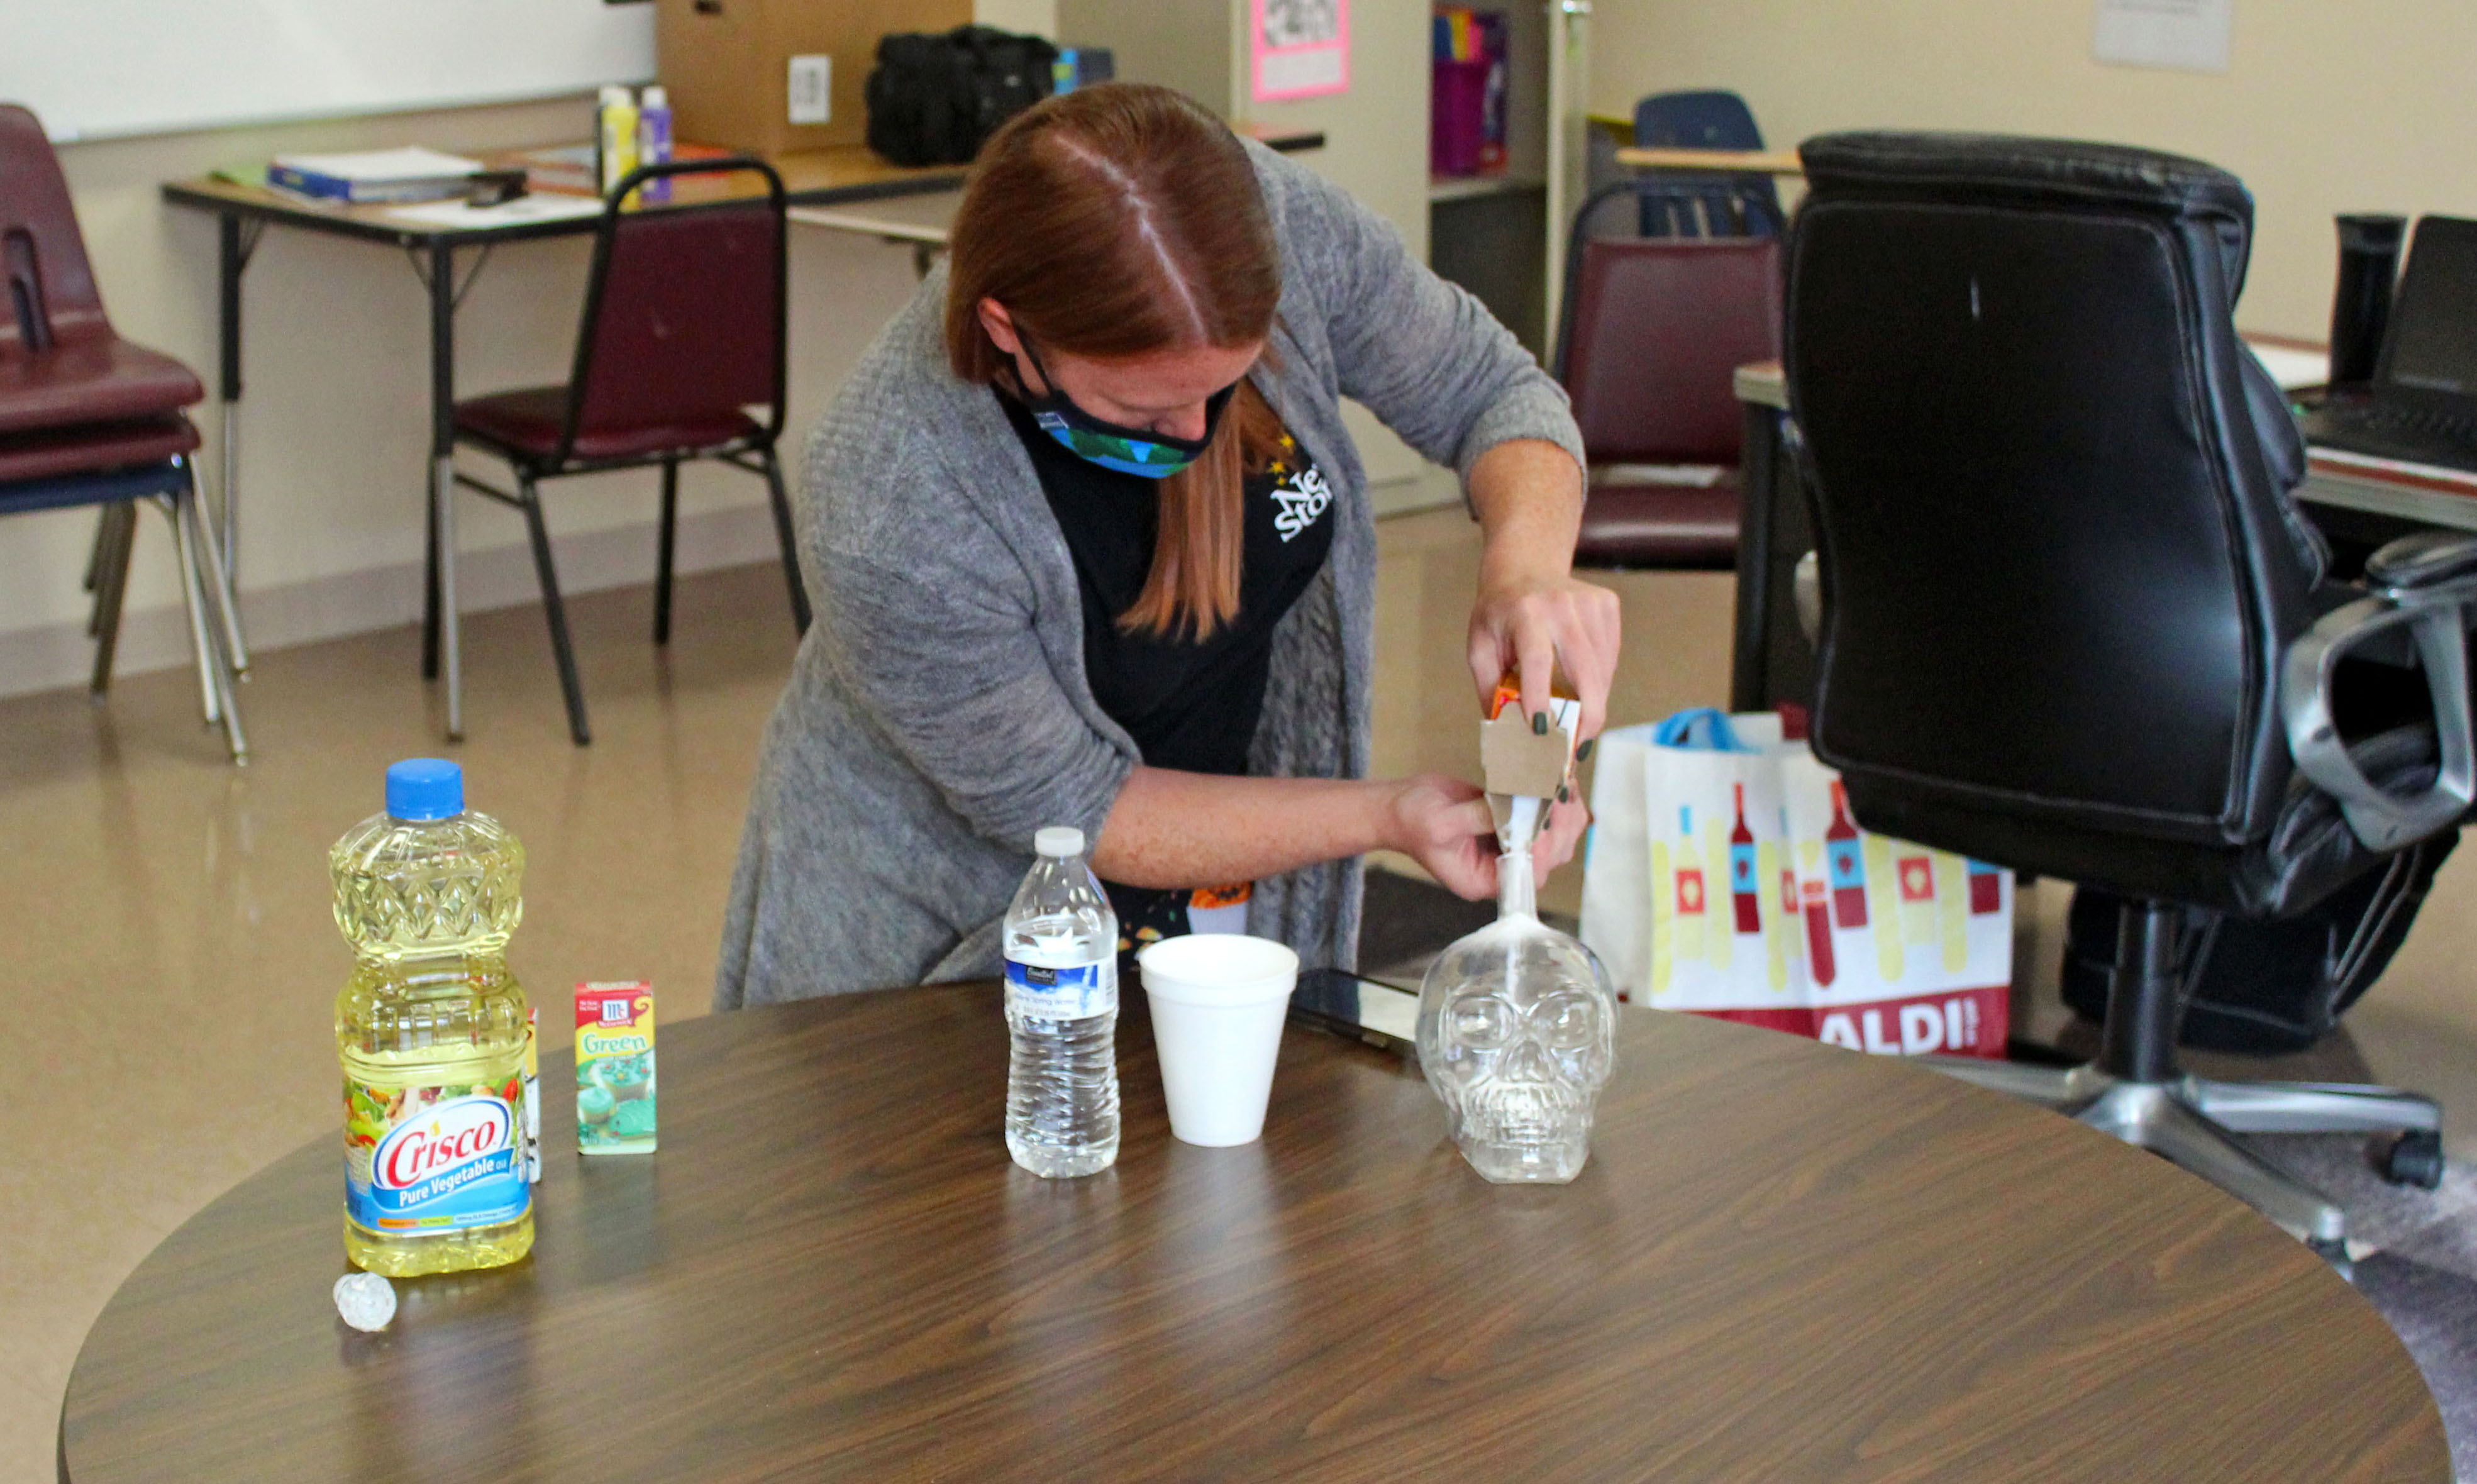 special-education-teacher-instructs-how-to-make-lava-lamp-gallery-2